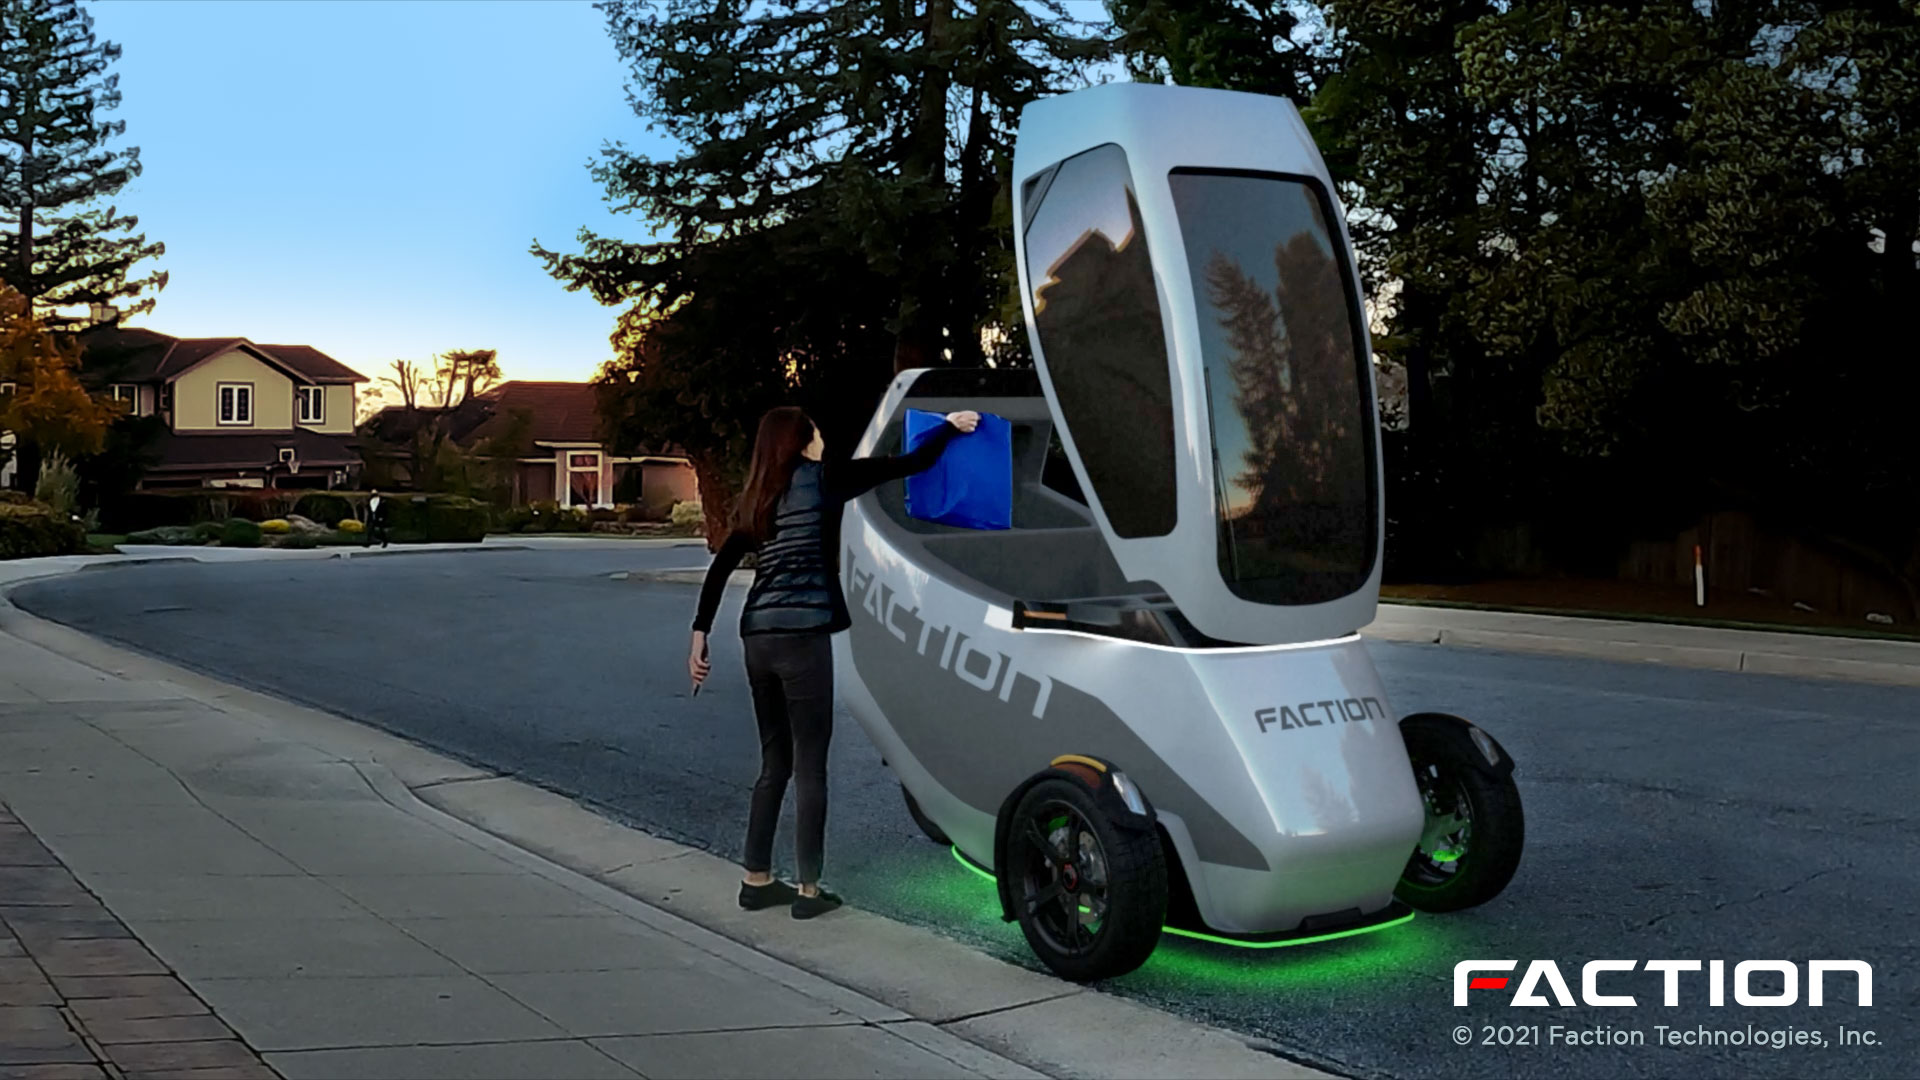 Faction raises $4.3M to deploy 3-wheeled EVs for driverless delivery